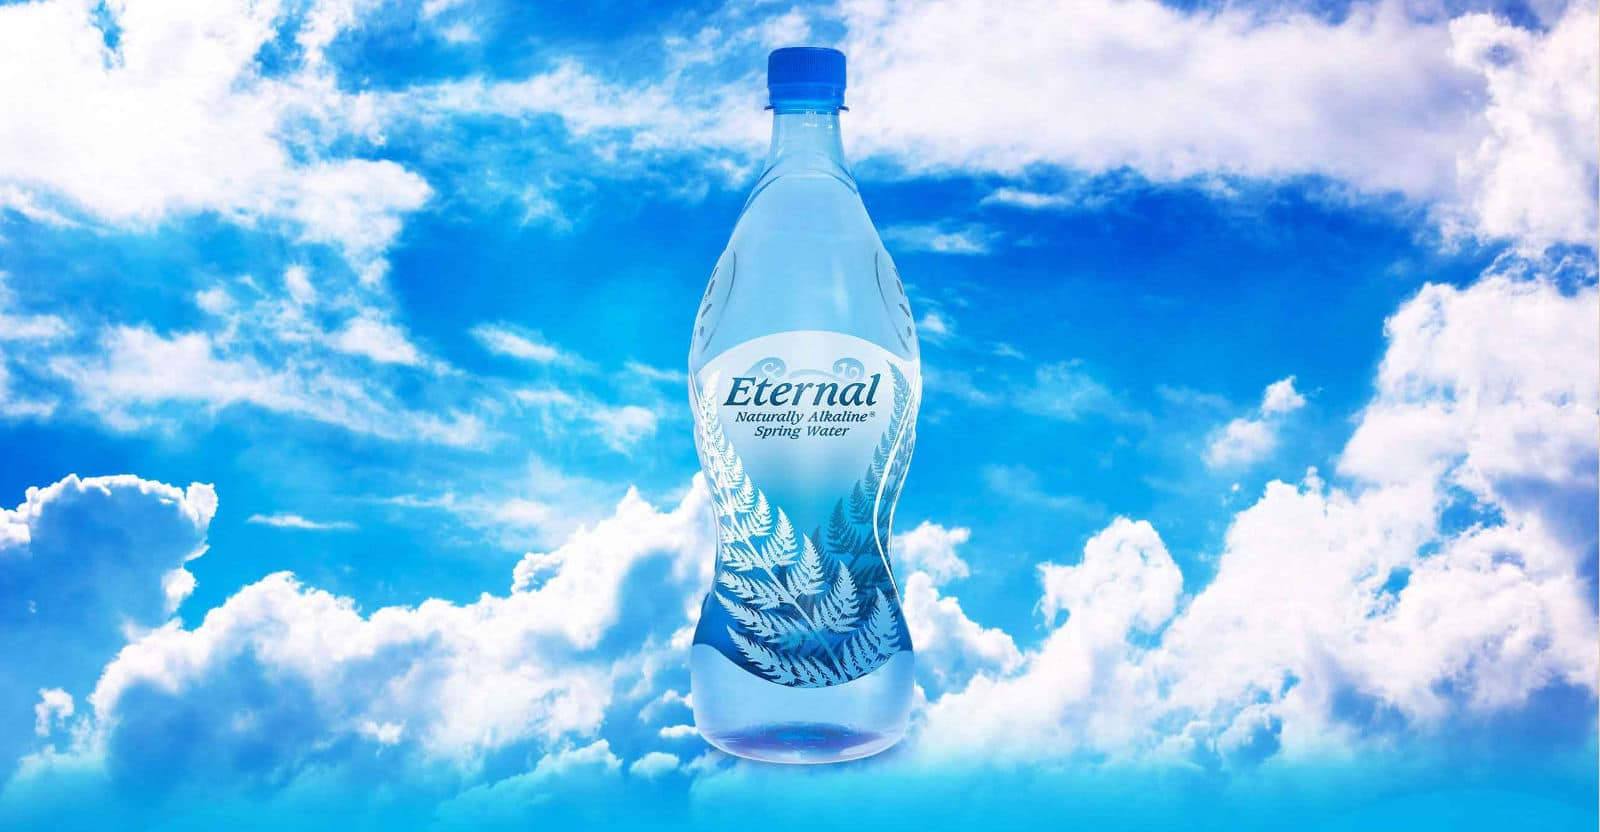 Eternal Water Review